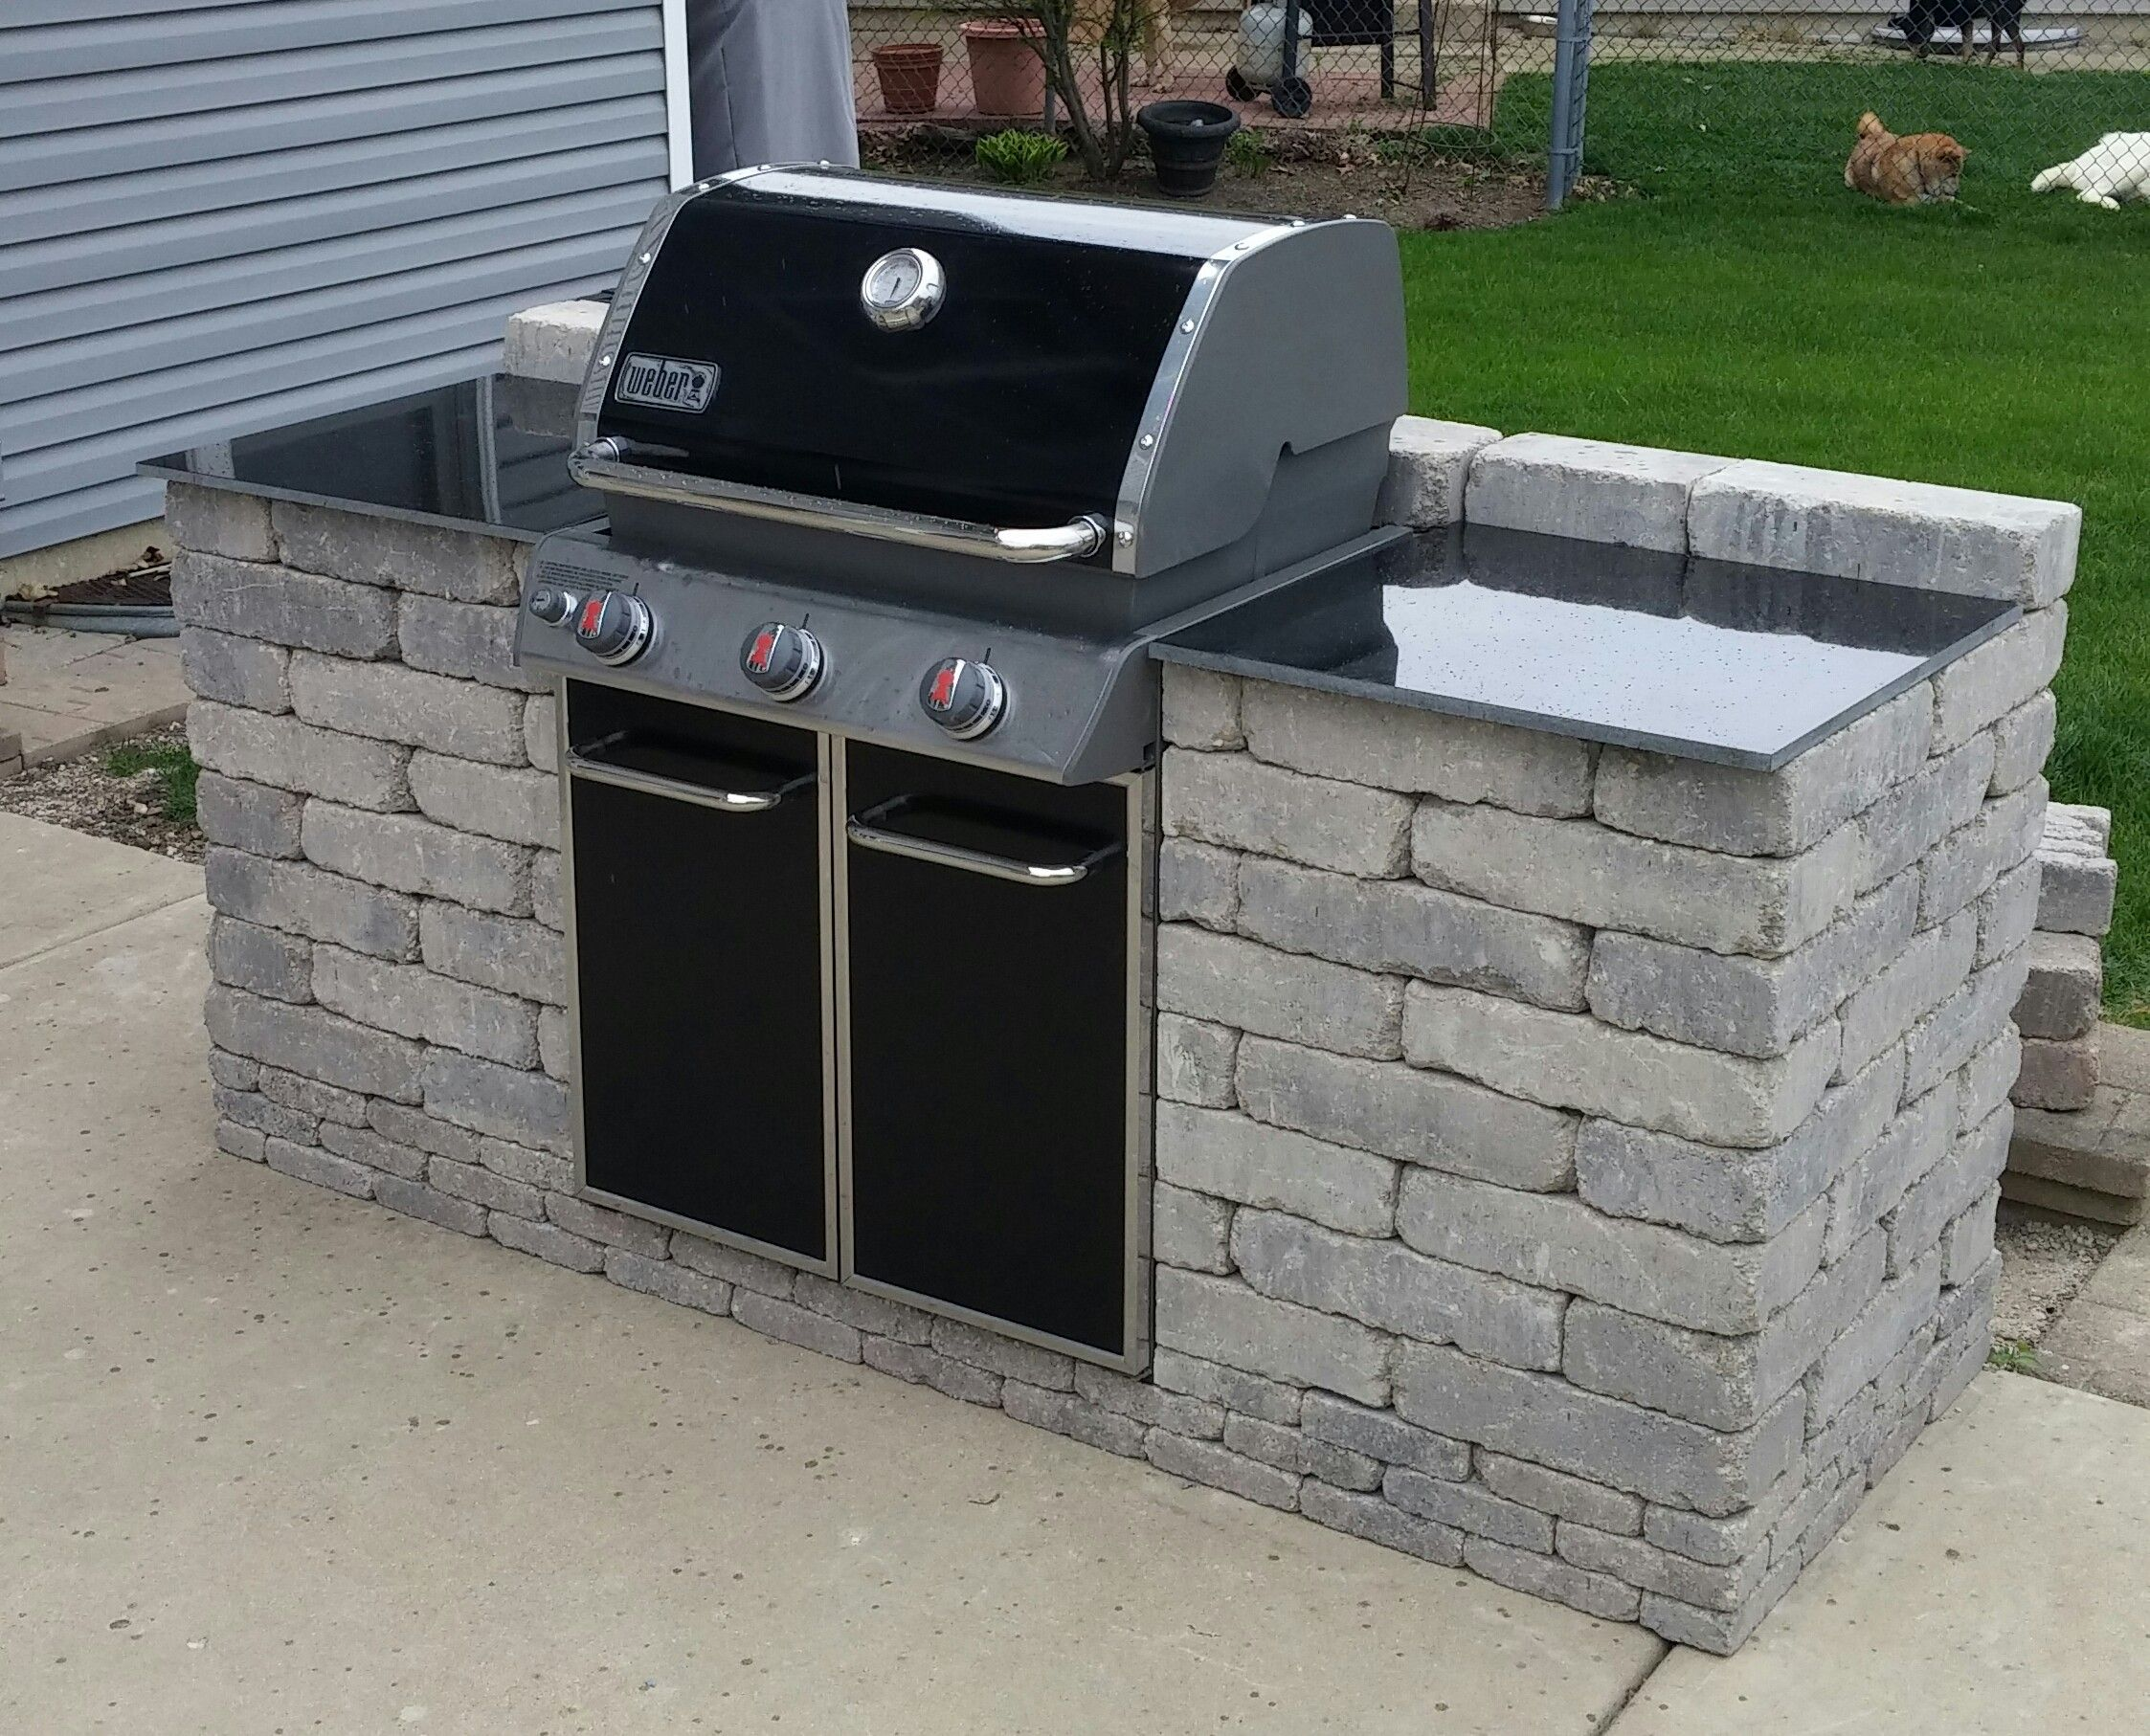 barbeque grill enclosure charcoal grill pinterest grilling